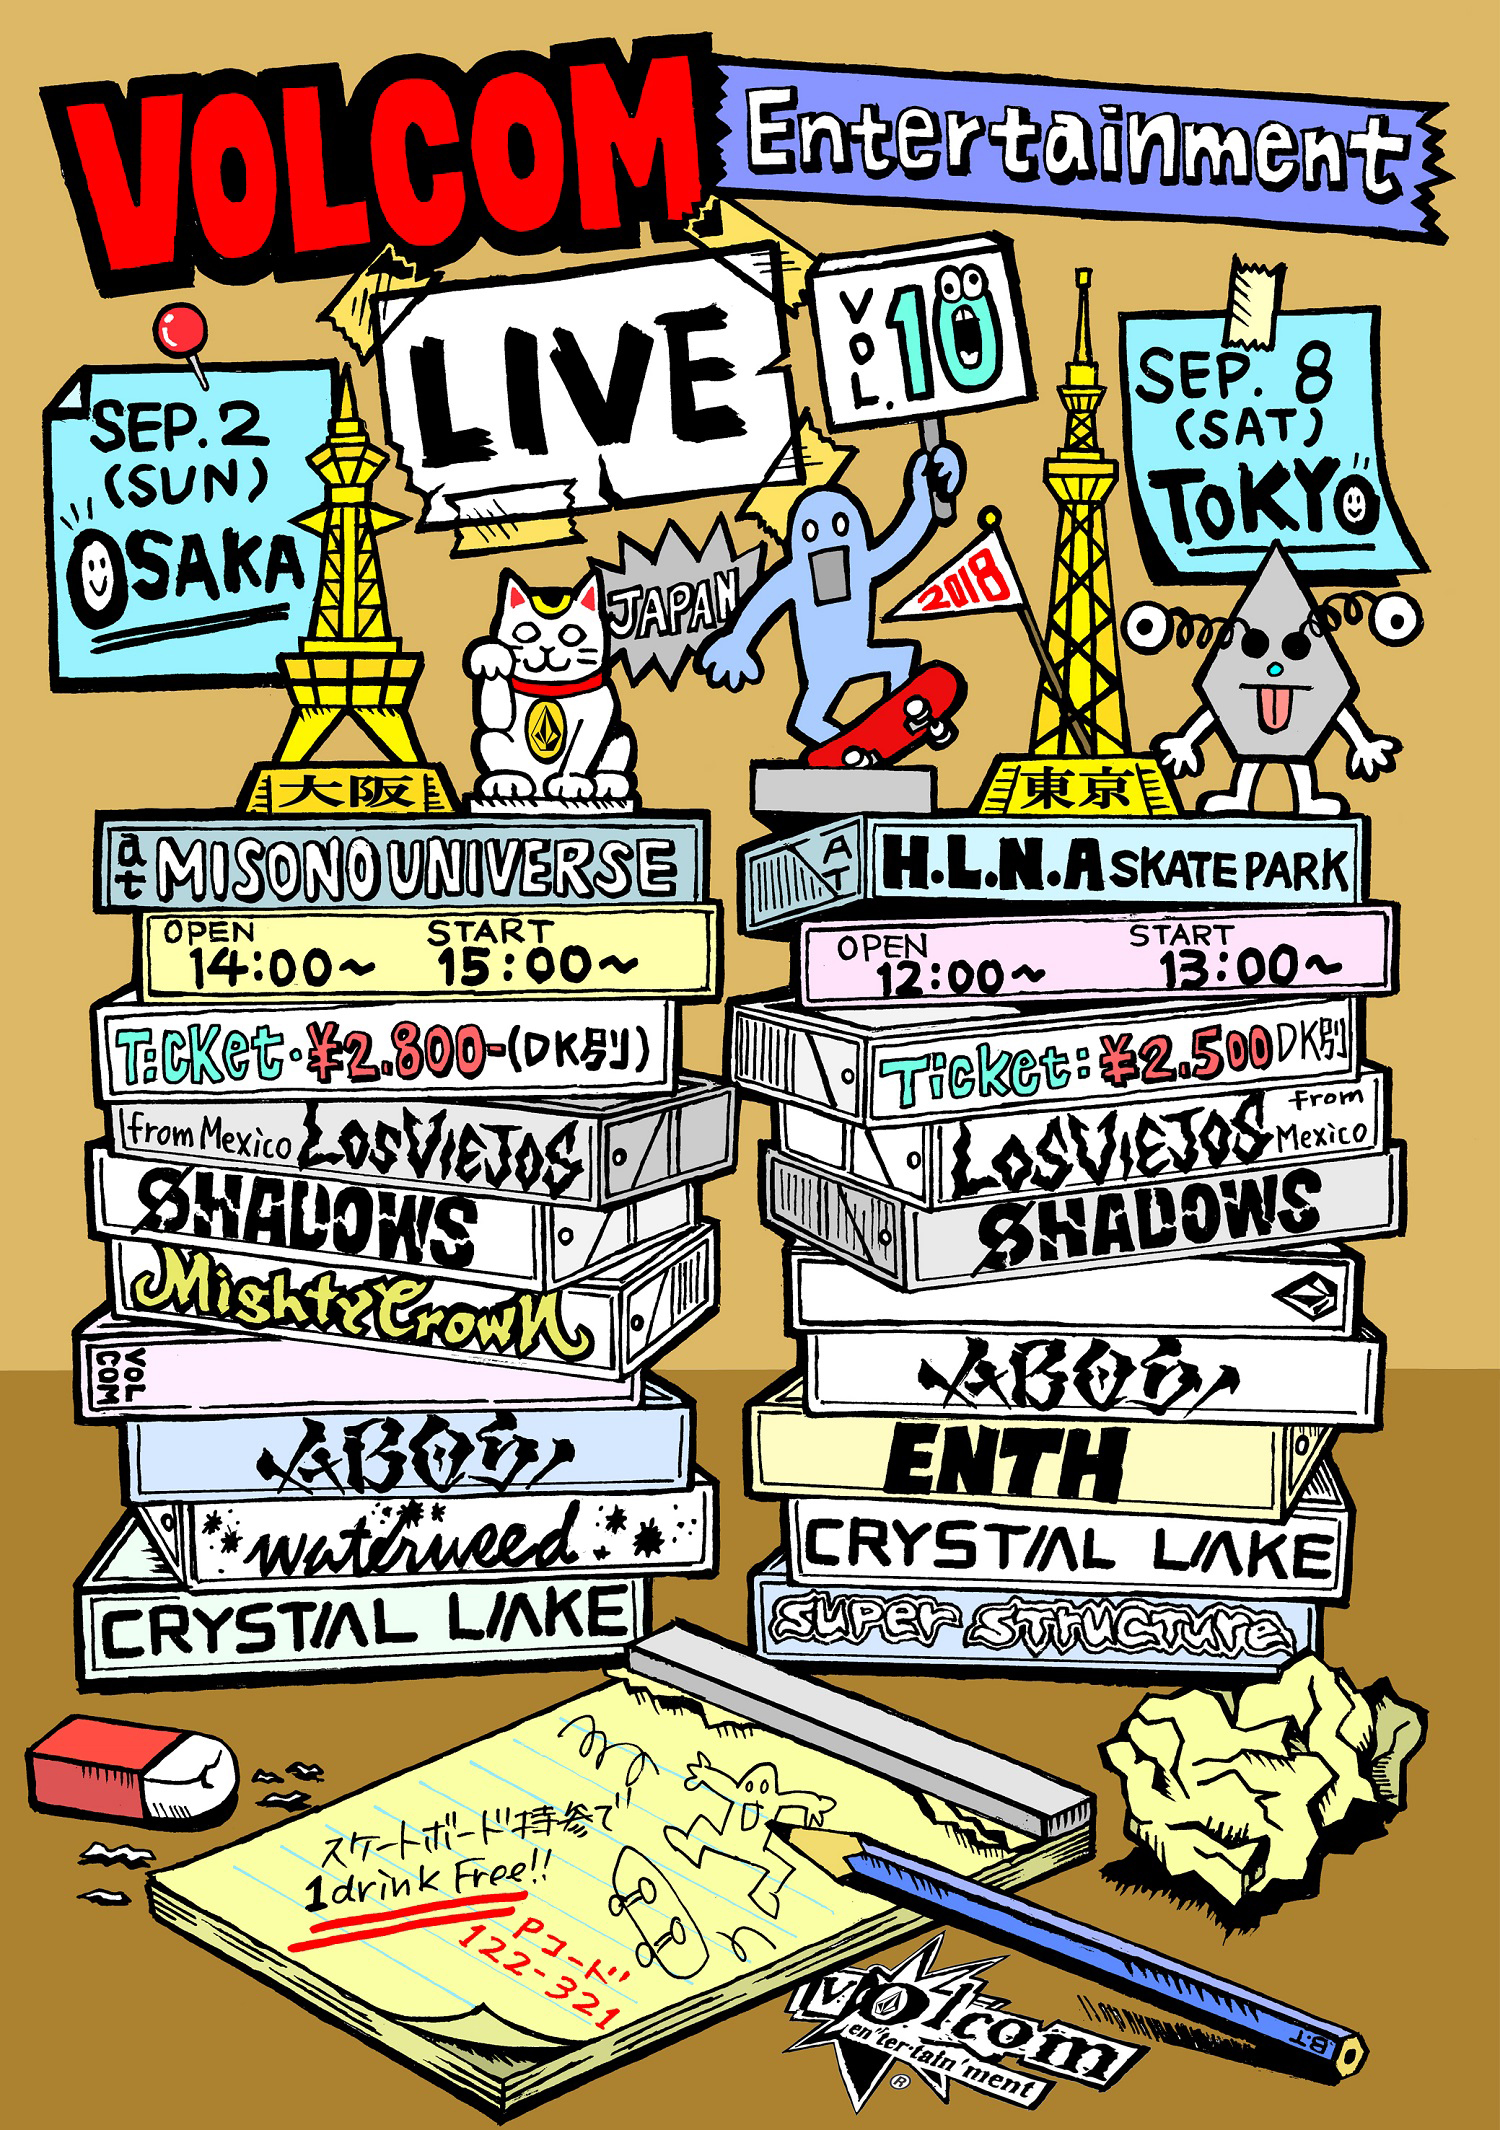 VOLCOM Entertainment LIVE vol.10